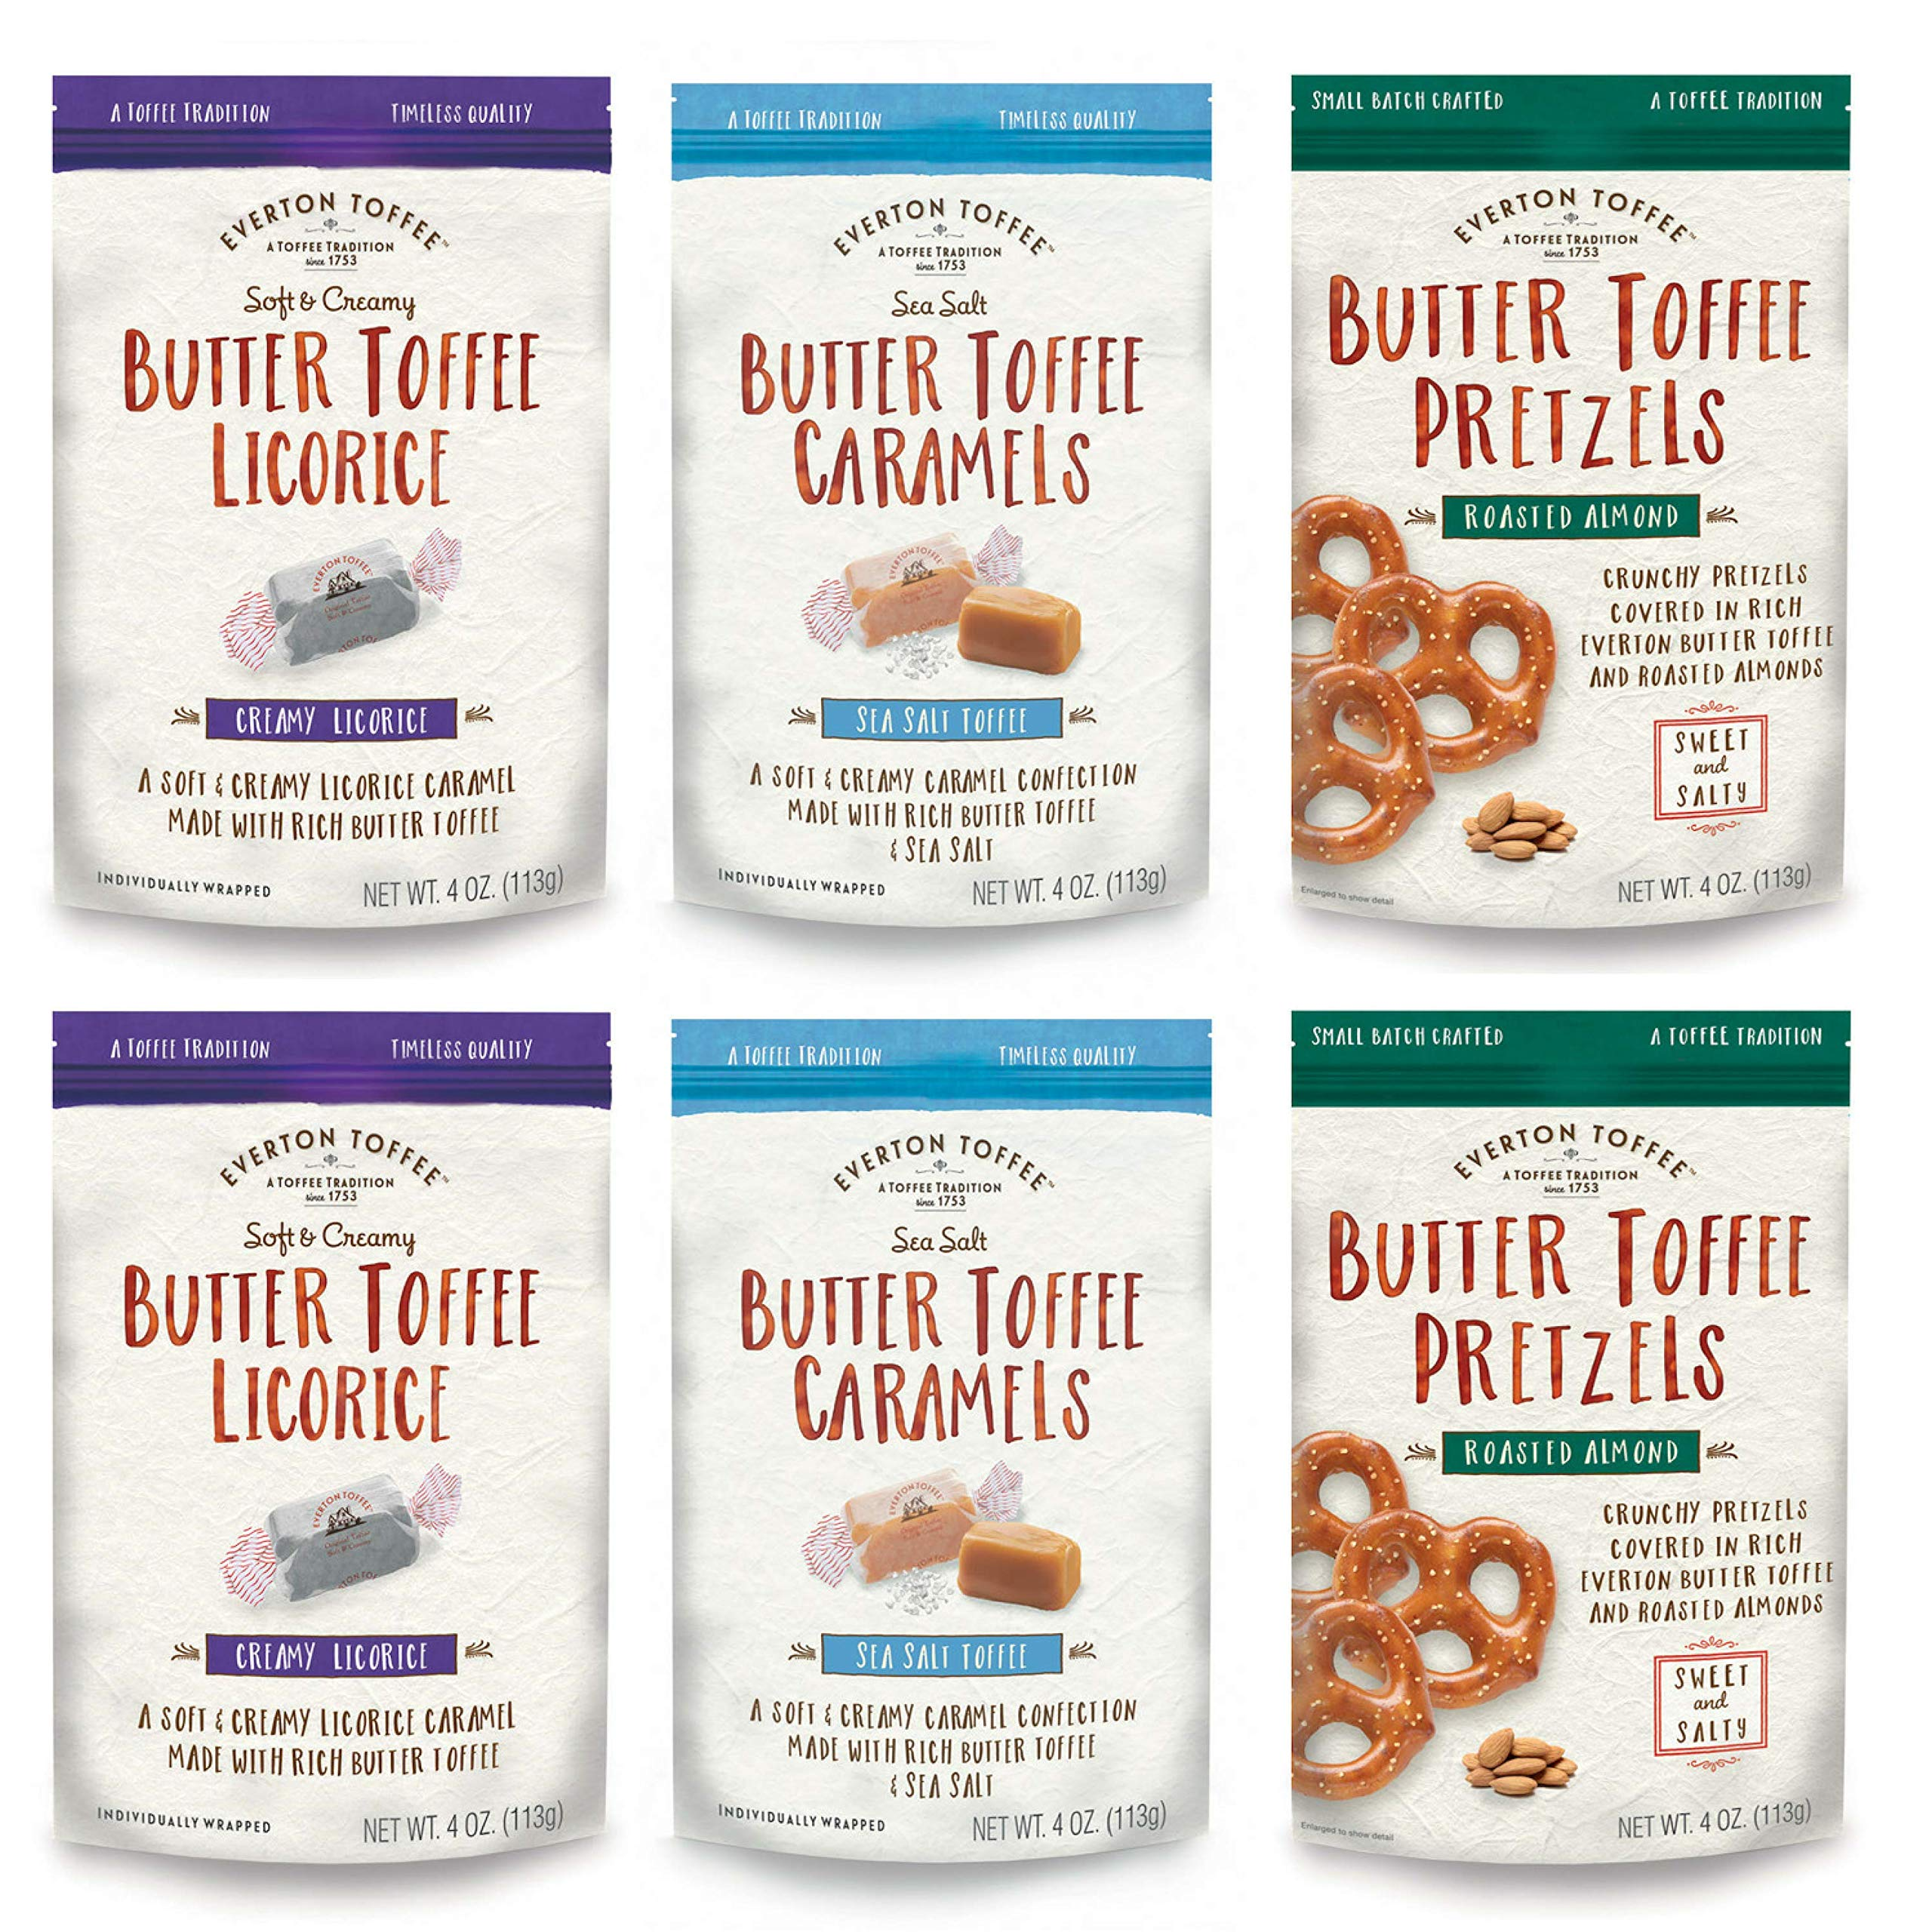 Everton Toffee Butter Toffee Caramels & Pretzels, Taster's Variety Pack (4 oz bag, 6-Pack); Gourmet, Artisan Soft Creamy Caramels - Licorice and Sea Salt Flavors and Roasted Almond Mini Pretzel Snack by Everton Toffee